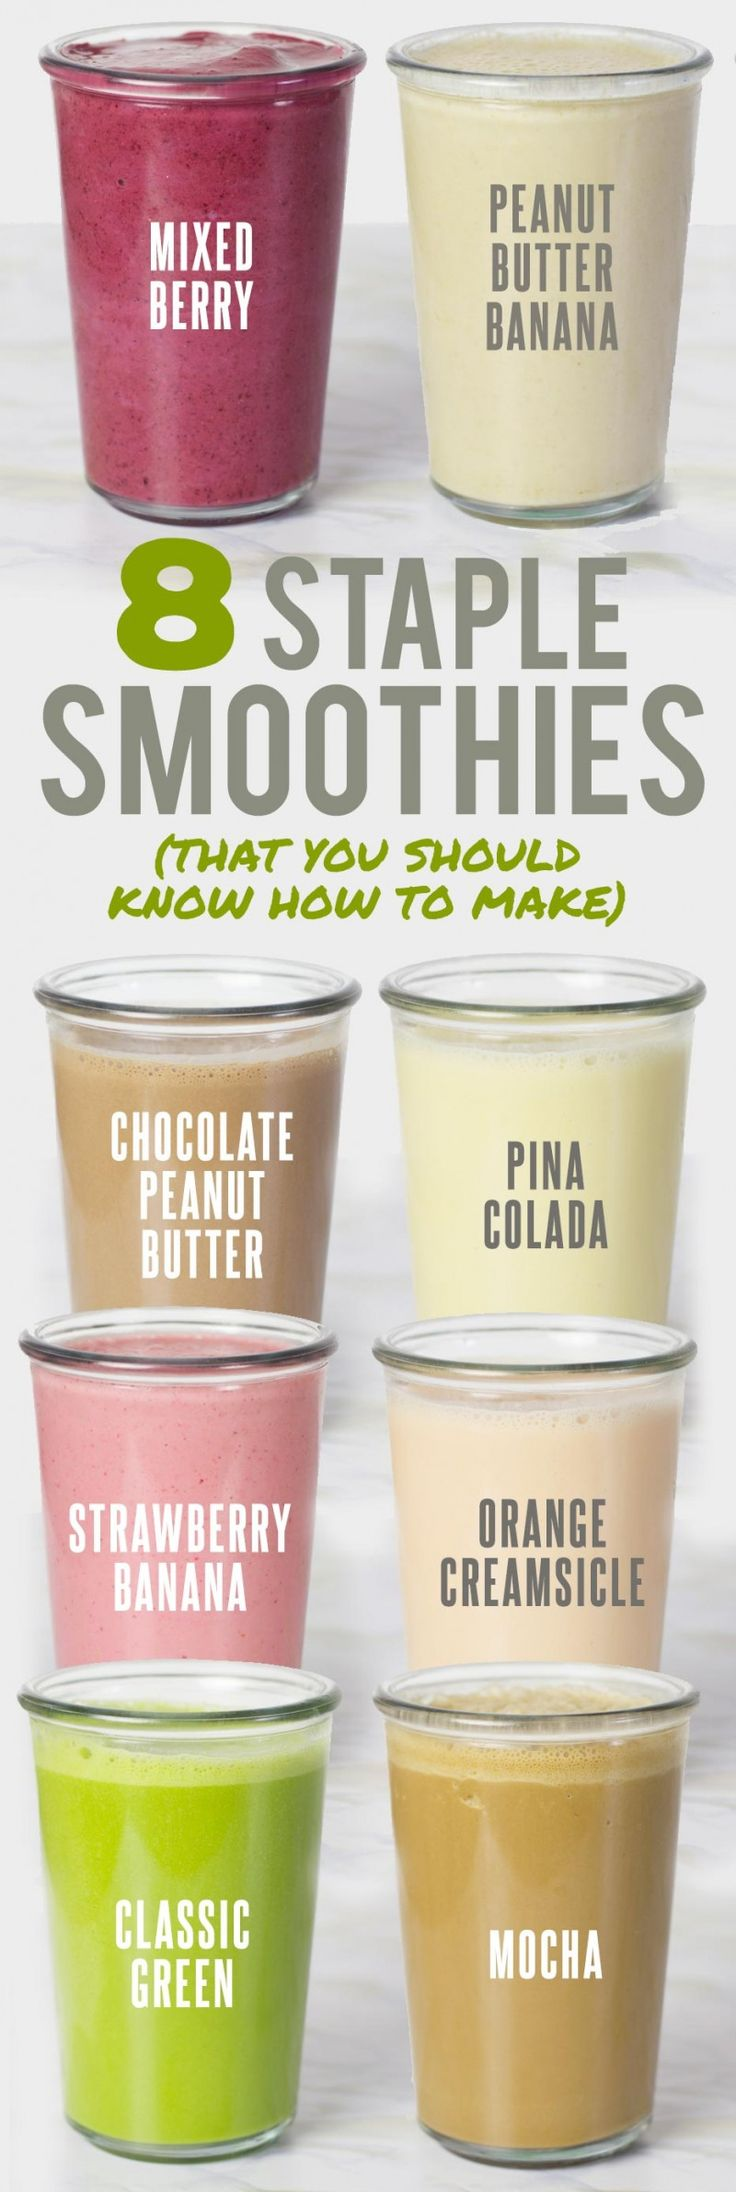 8 Staple Smoothies That You Should Know How to Make // In need of a detox? Get 10% off your teatox order using our discount code 'Pinterest10' on www.skinnymetea.com.au